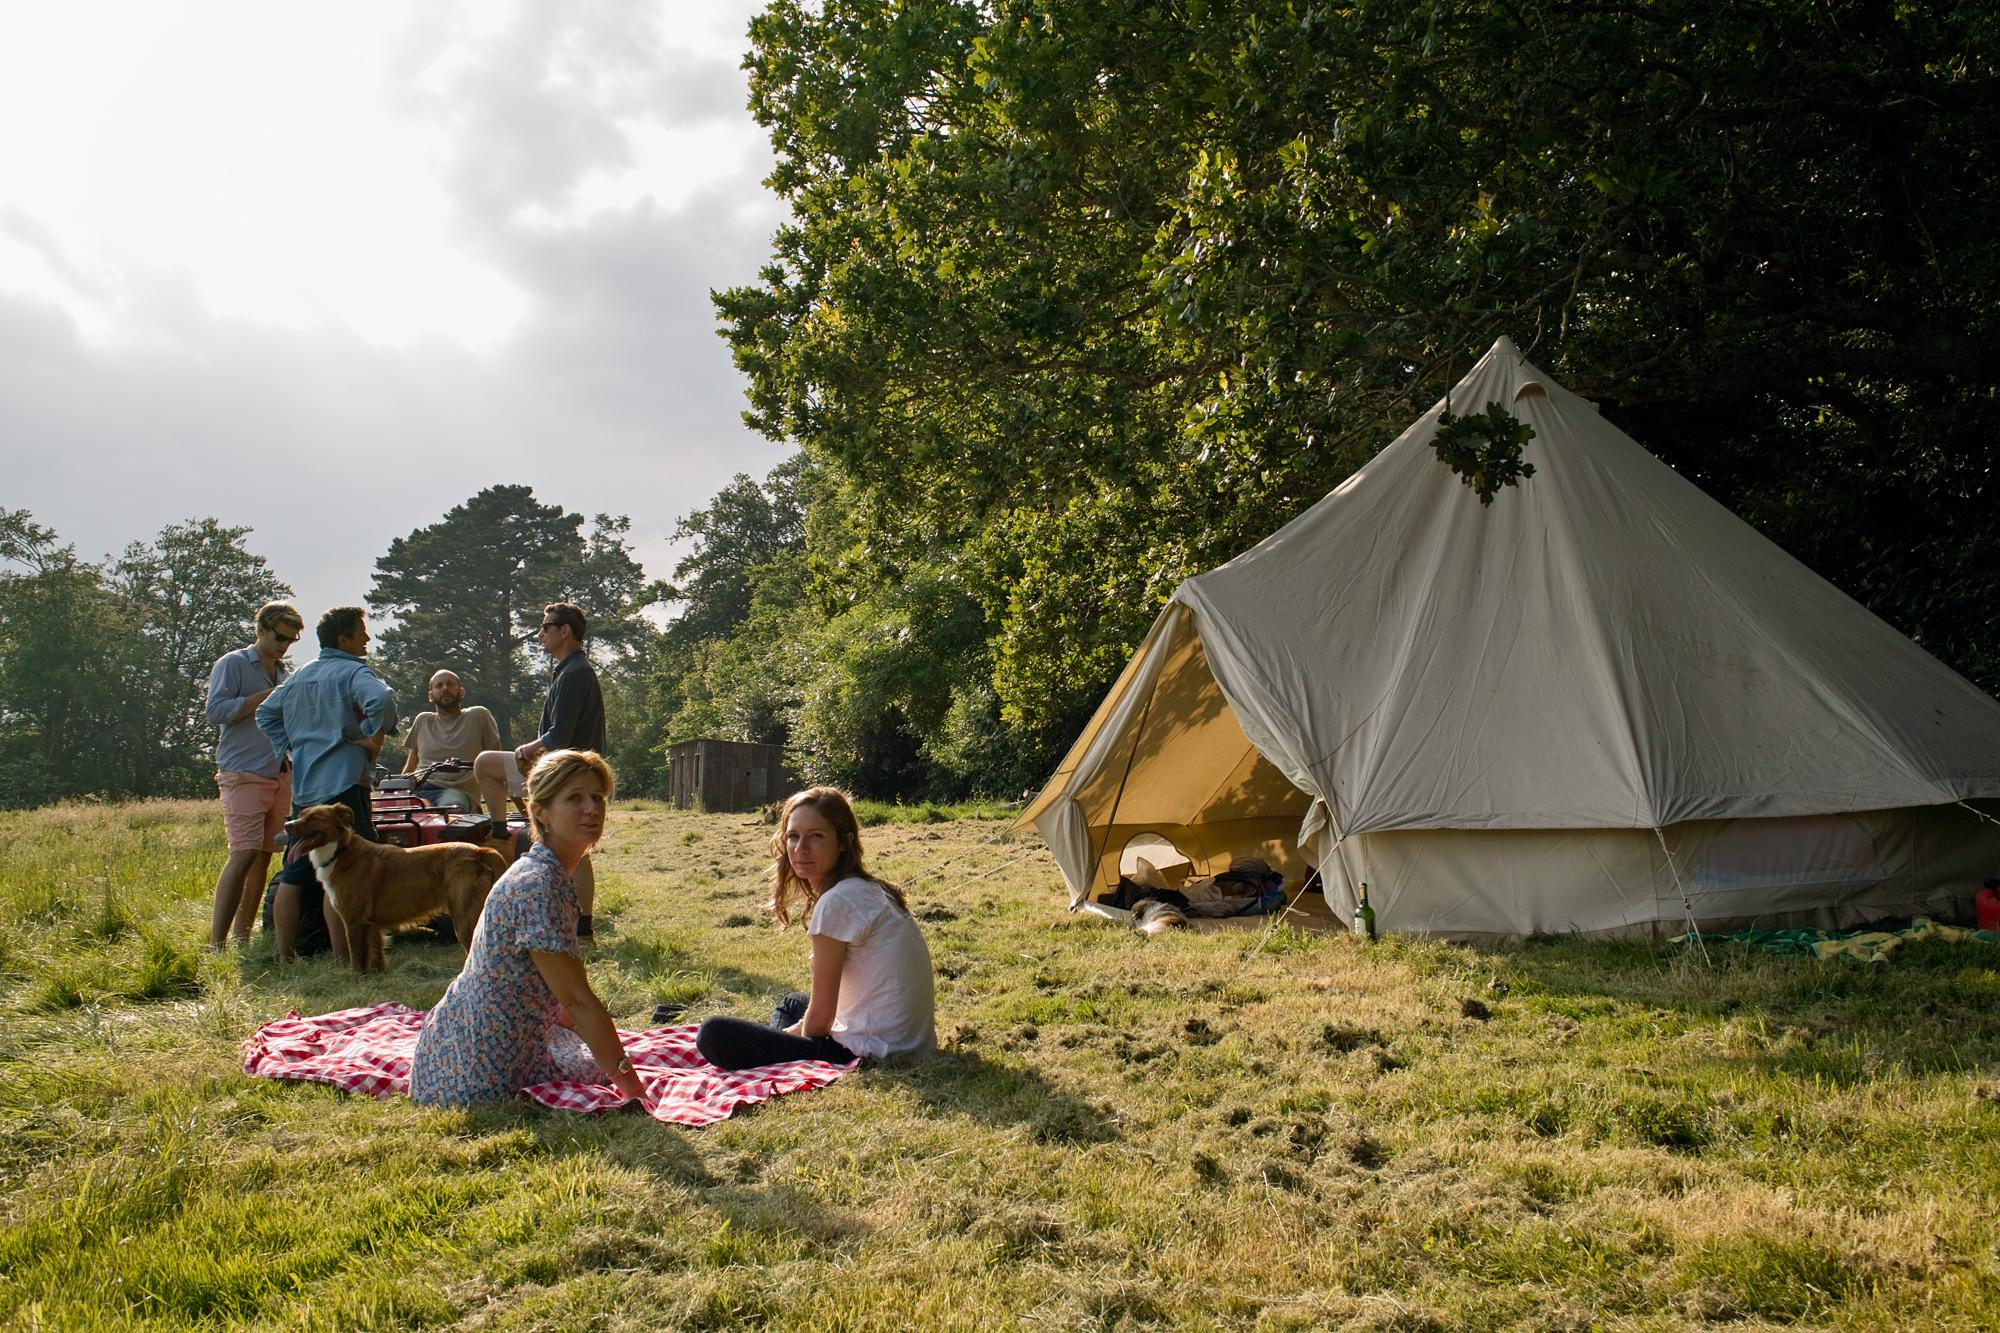 Campgrounds and Camping in England, United Kingdom